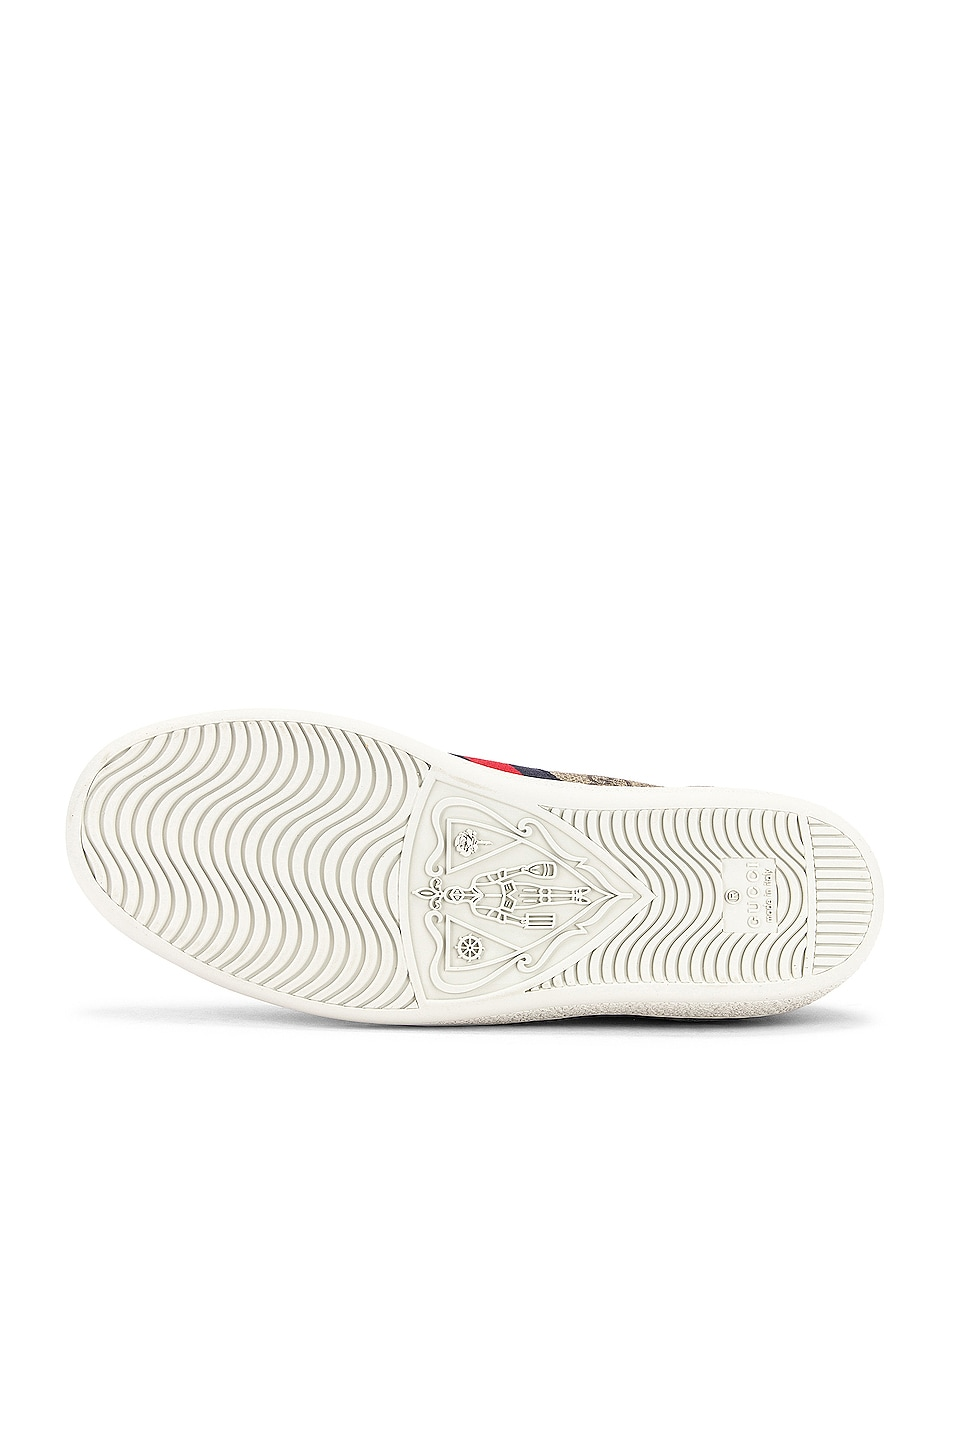 Image 6 of Gucci New Ace GG Sneakers in Beige Ebony & Red